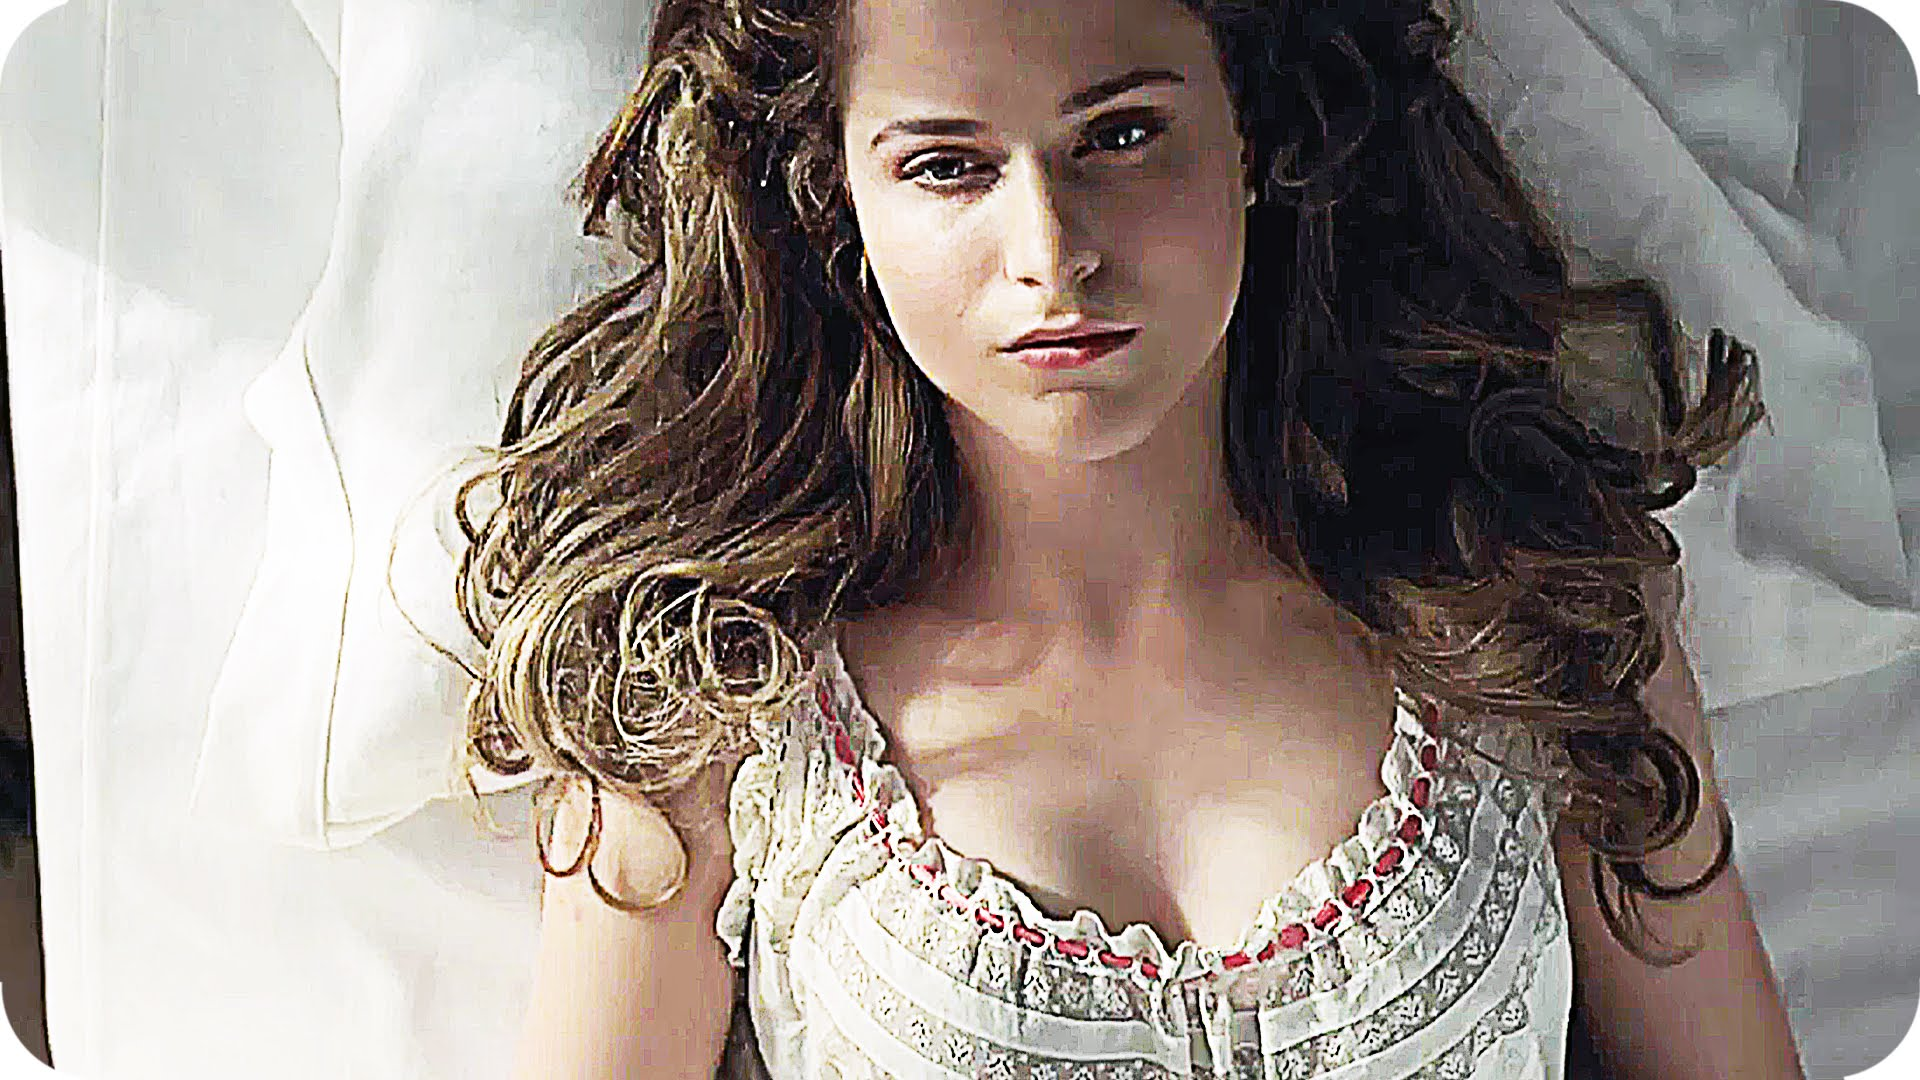 20 Top Westworld Wallpapers   My Wallpapers Hub 1920x1080